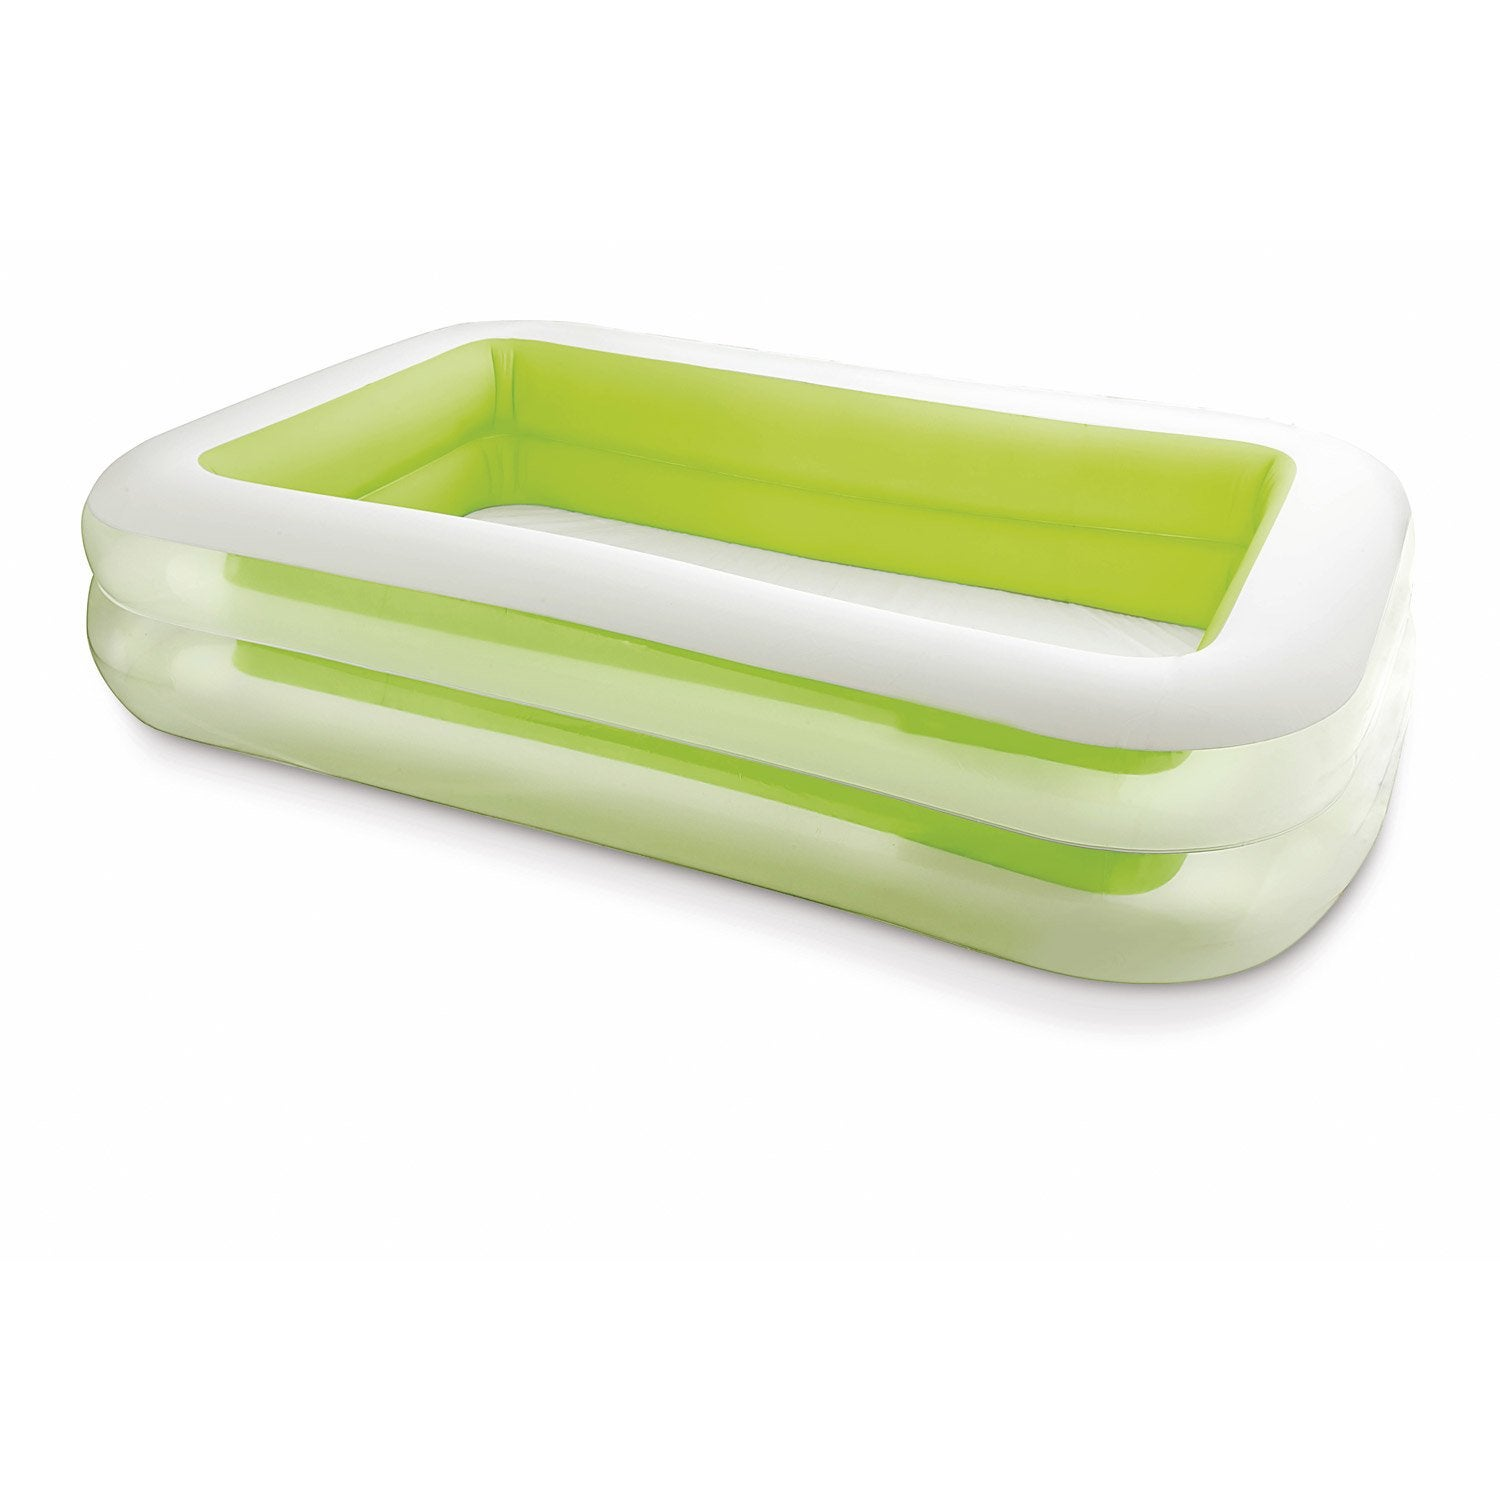 Piscine hors sol autoportante gonflable intex l x l for Piscine hors sol rectangulaire 4x3